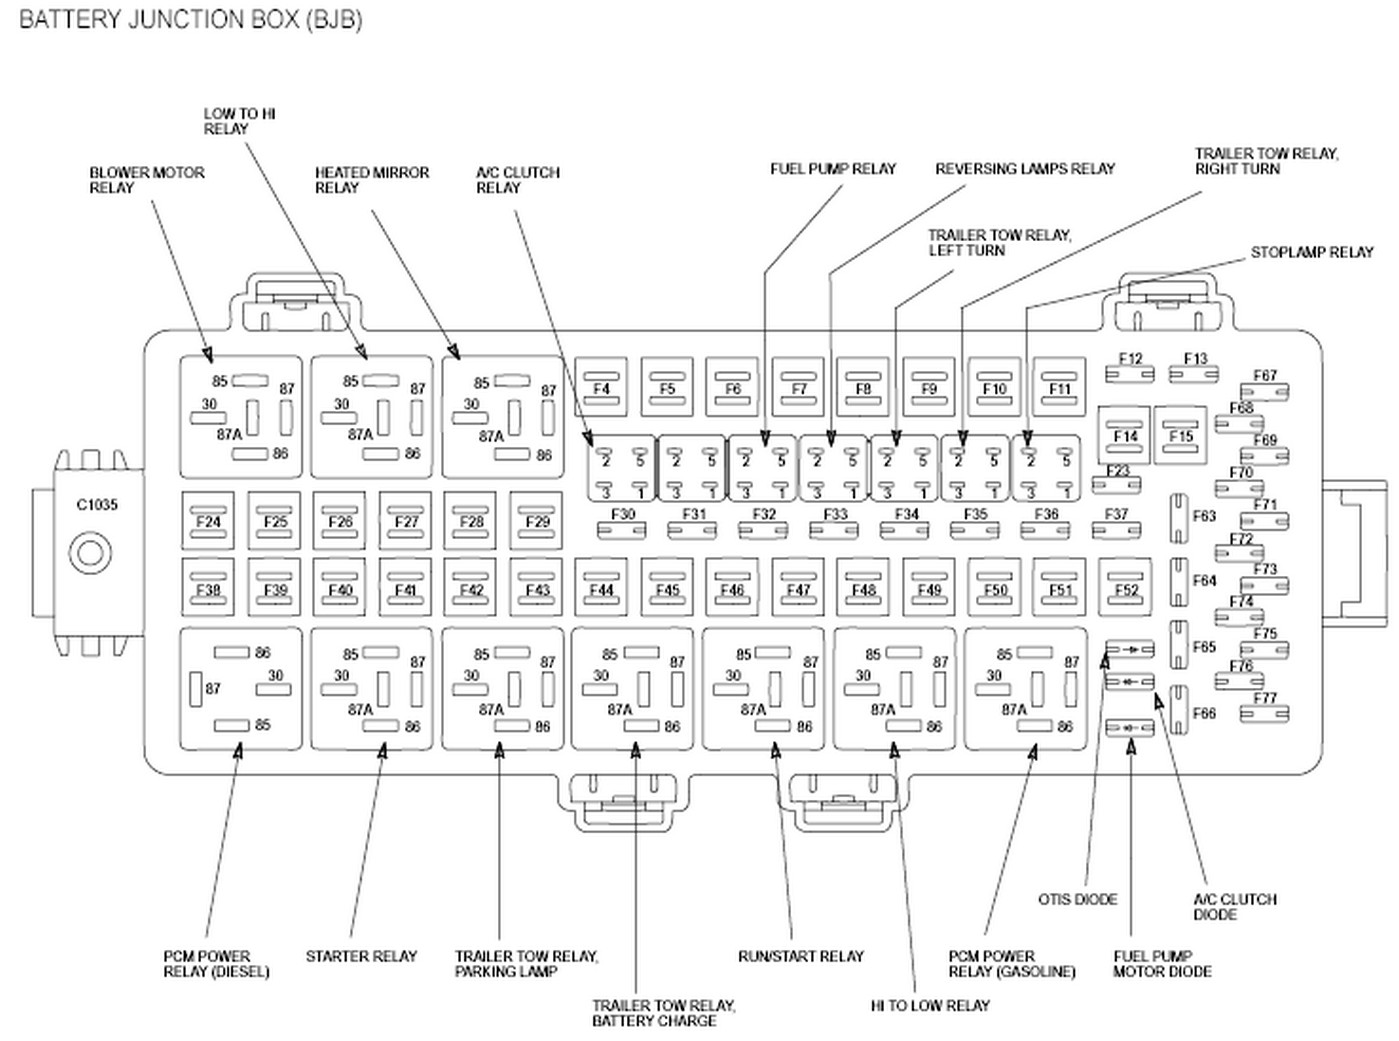 [DIAGRAM_4PO]  09 F350 Fuse Box Diagram Kicker Solo Baric L7 Wire Diagram -  pontiac.salak.astrea-construction.fr | 2008 Ford F 250 Fuse Box |  | Begeboy Wiring Diagram Source - ASTREA CONSTRUCTION